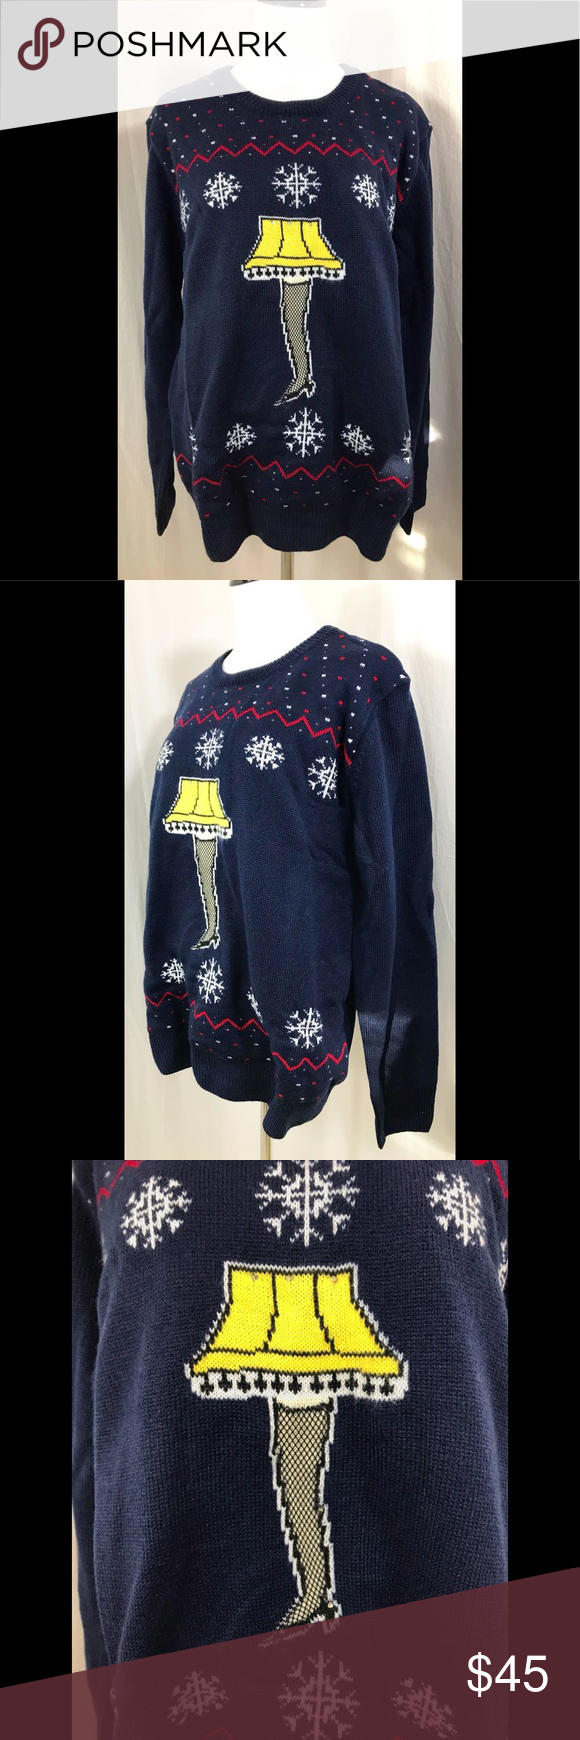 Holiday Christmas Story Lamp Sweater Lights Up! NWT